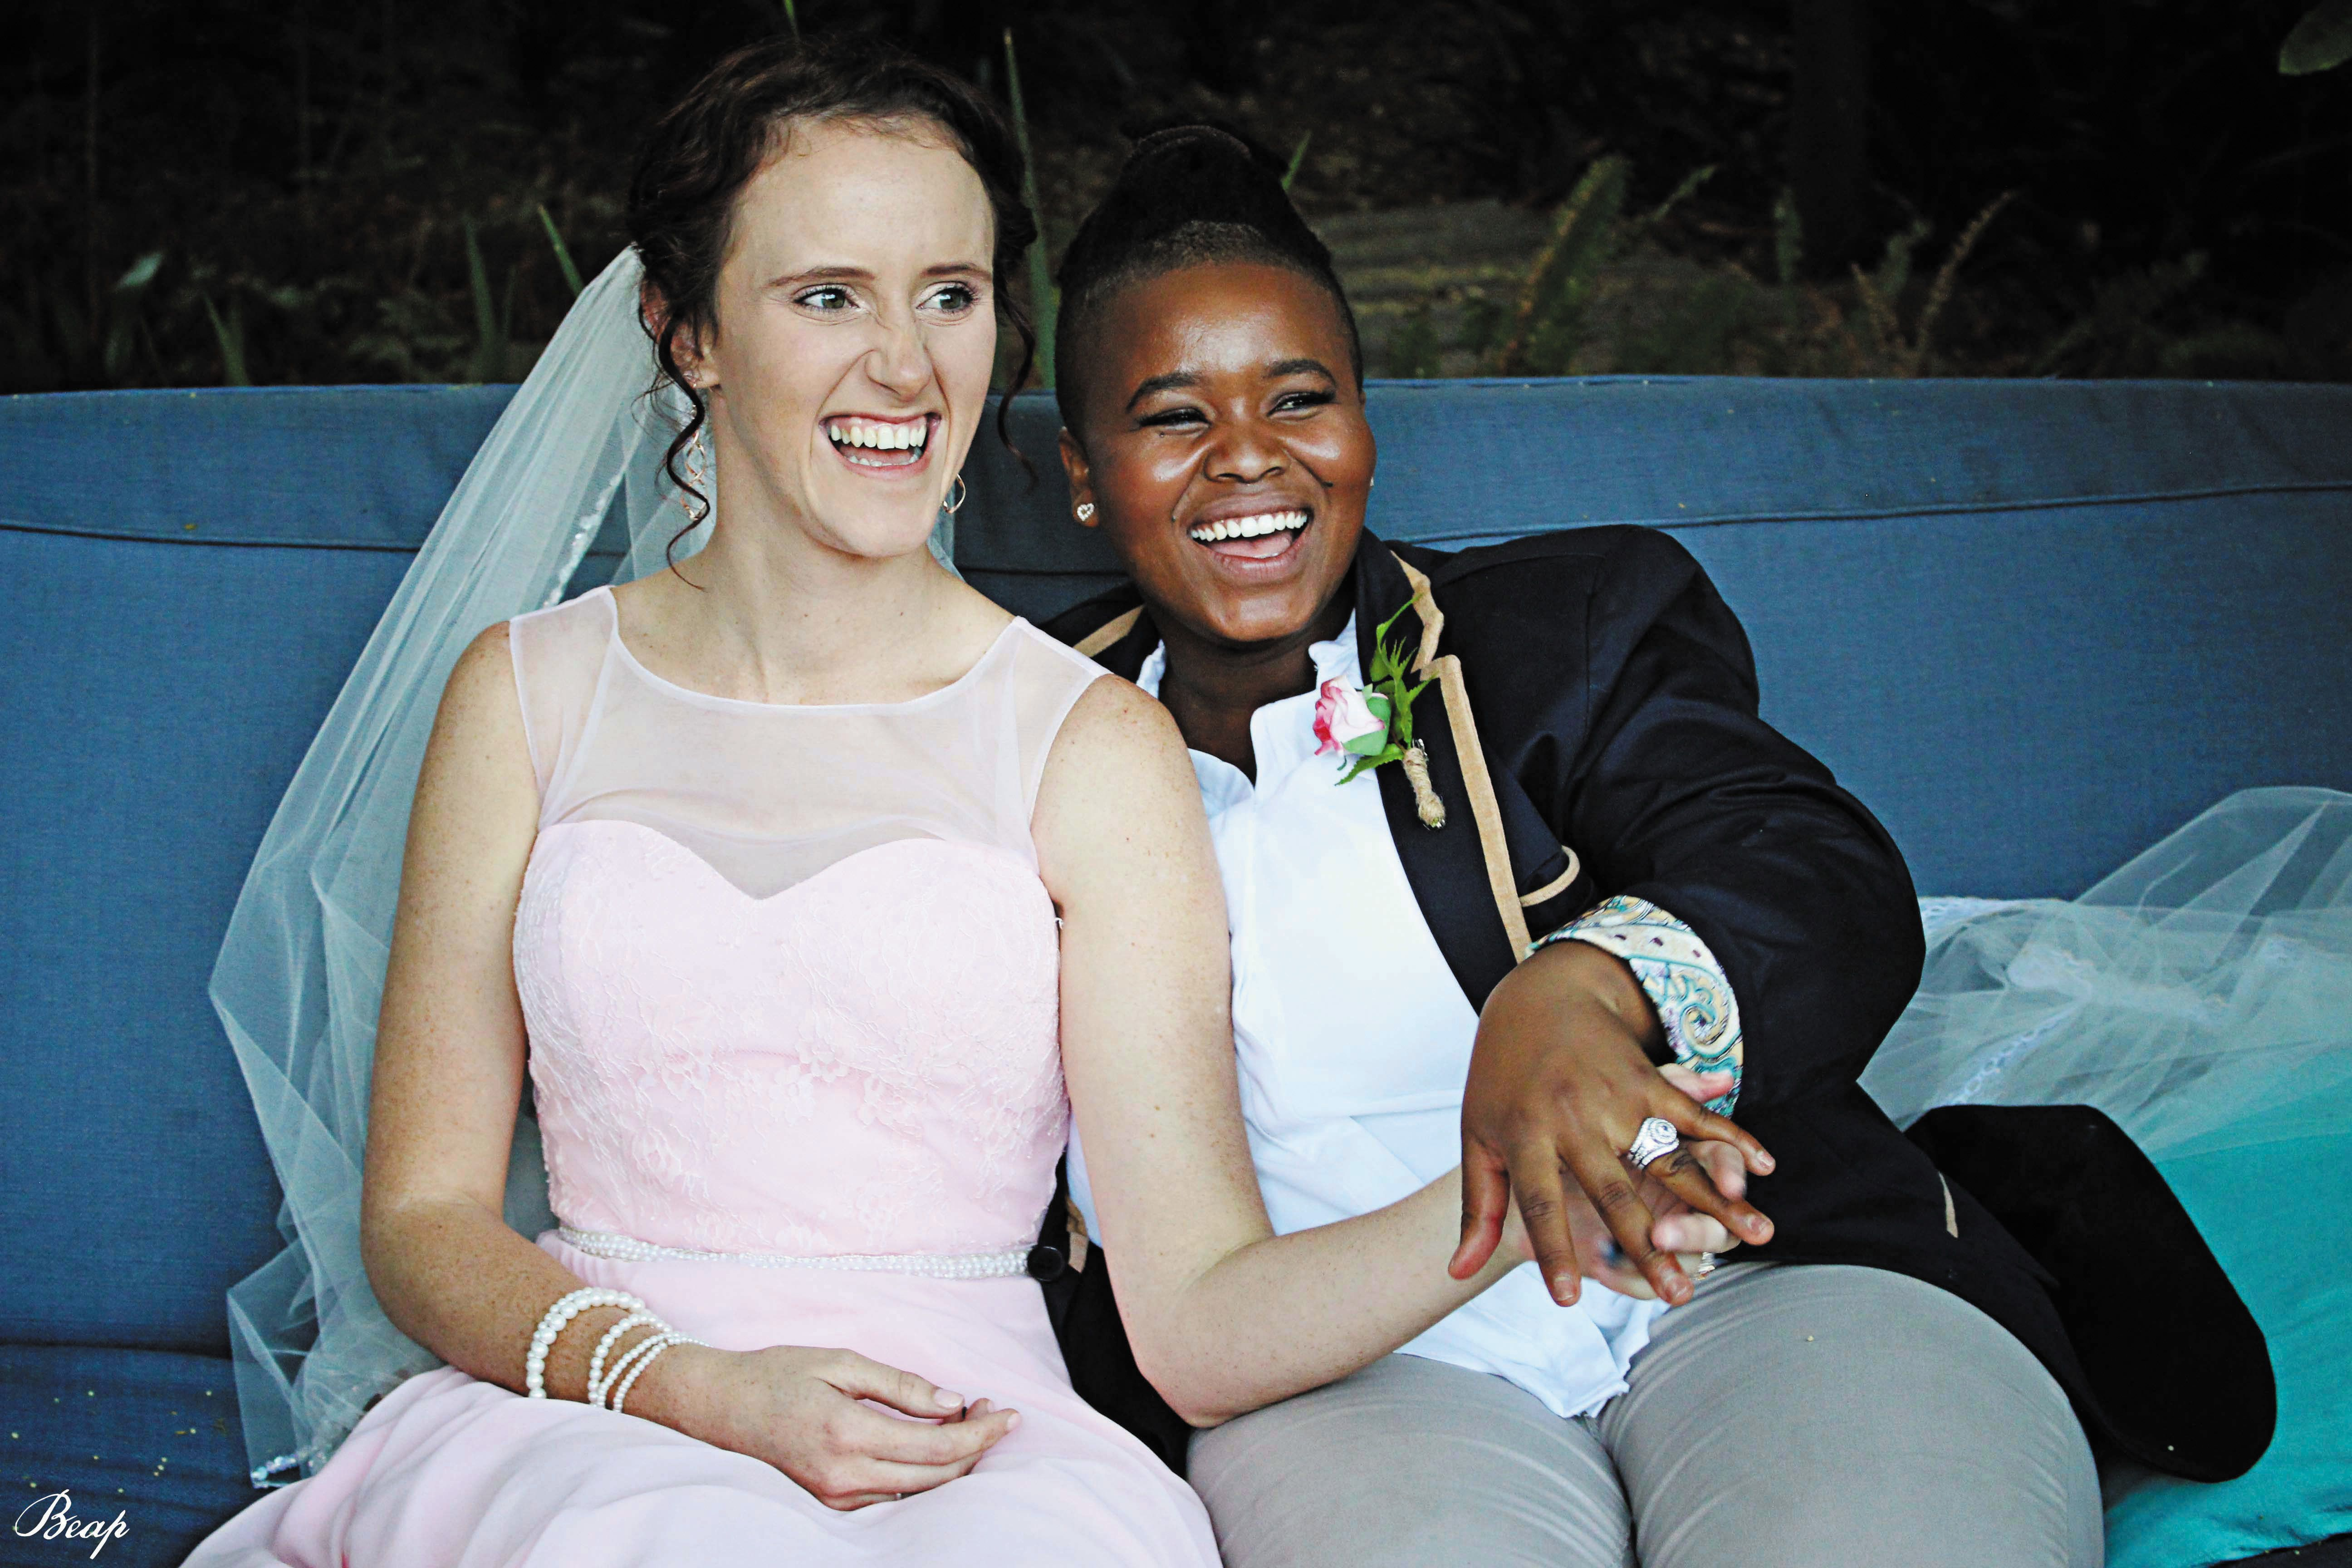 One of the real-life weddings featured in the magazine.